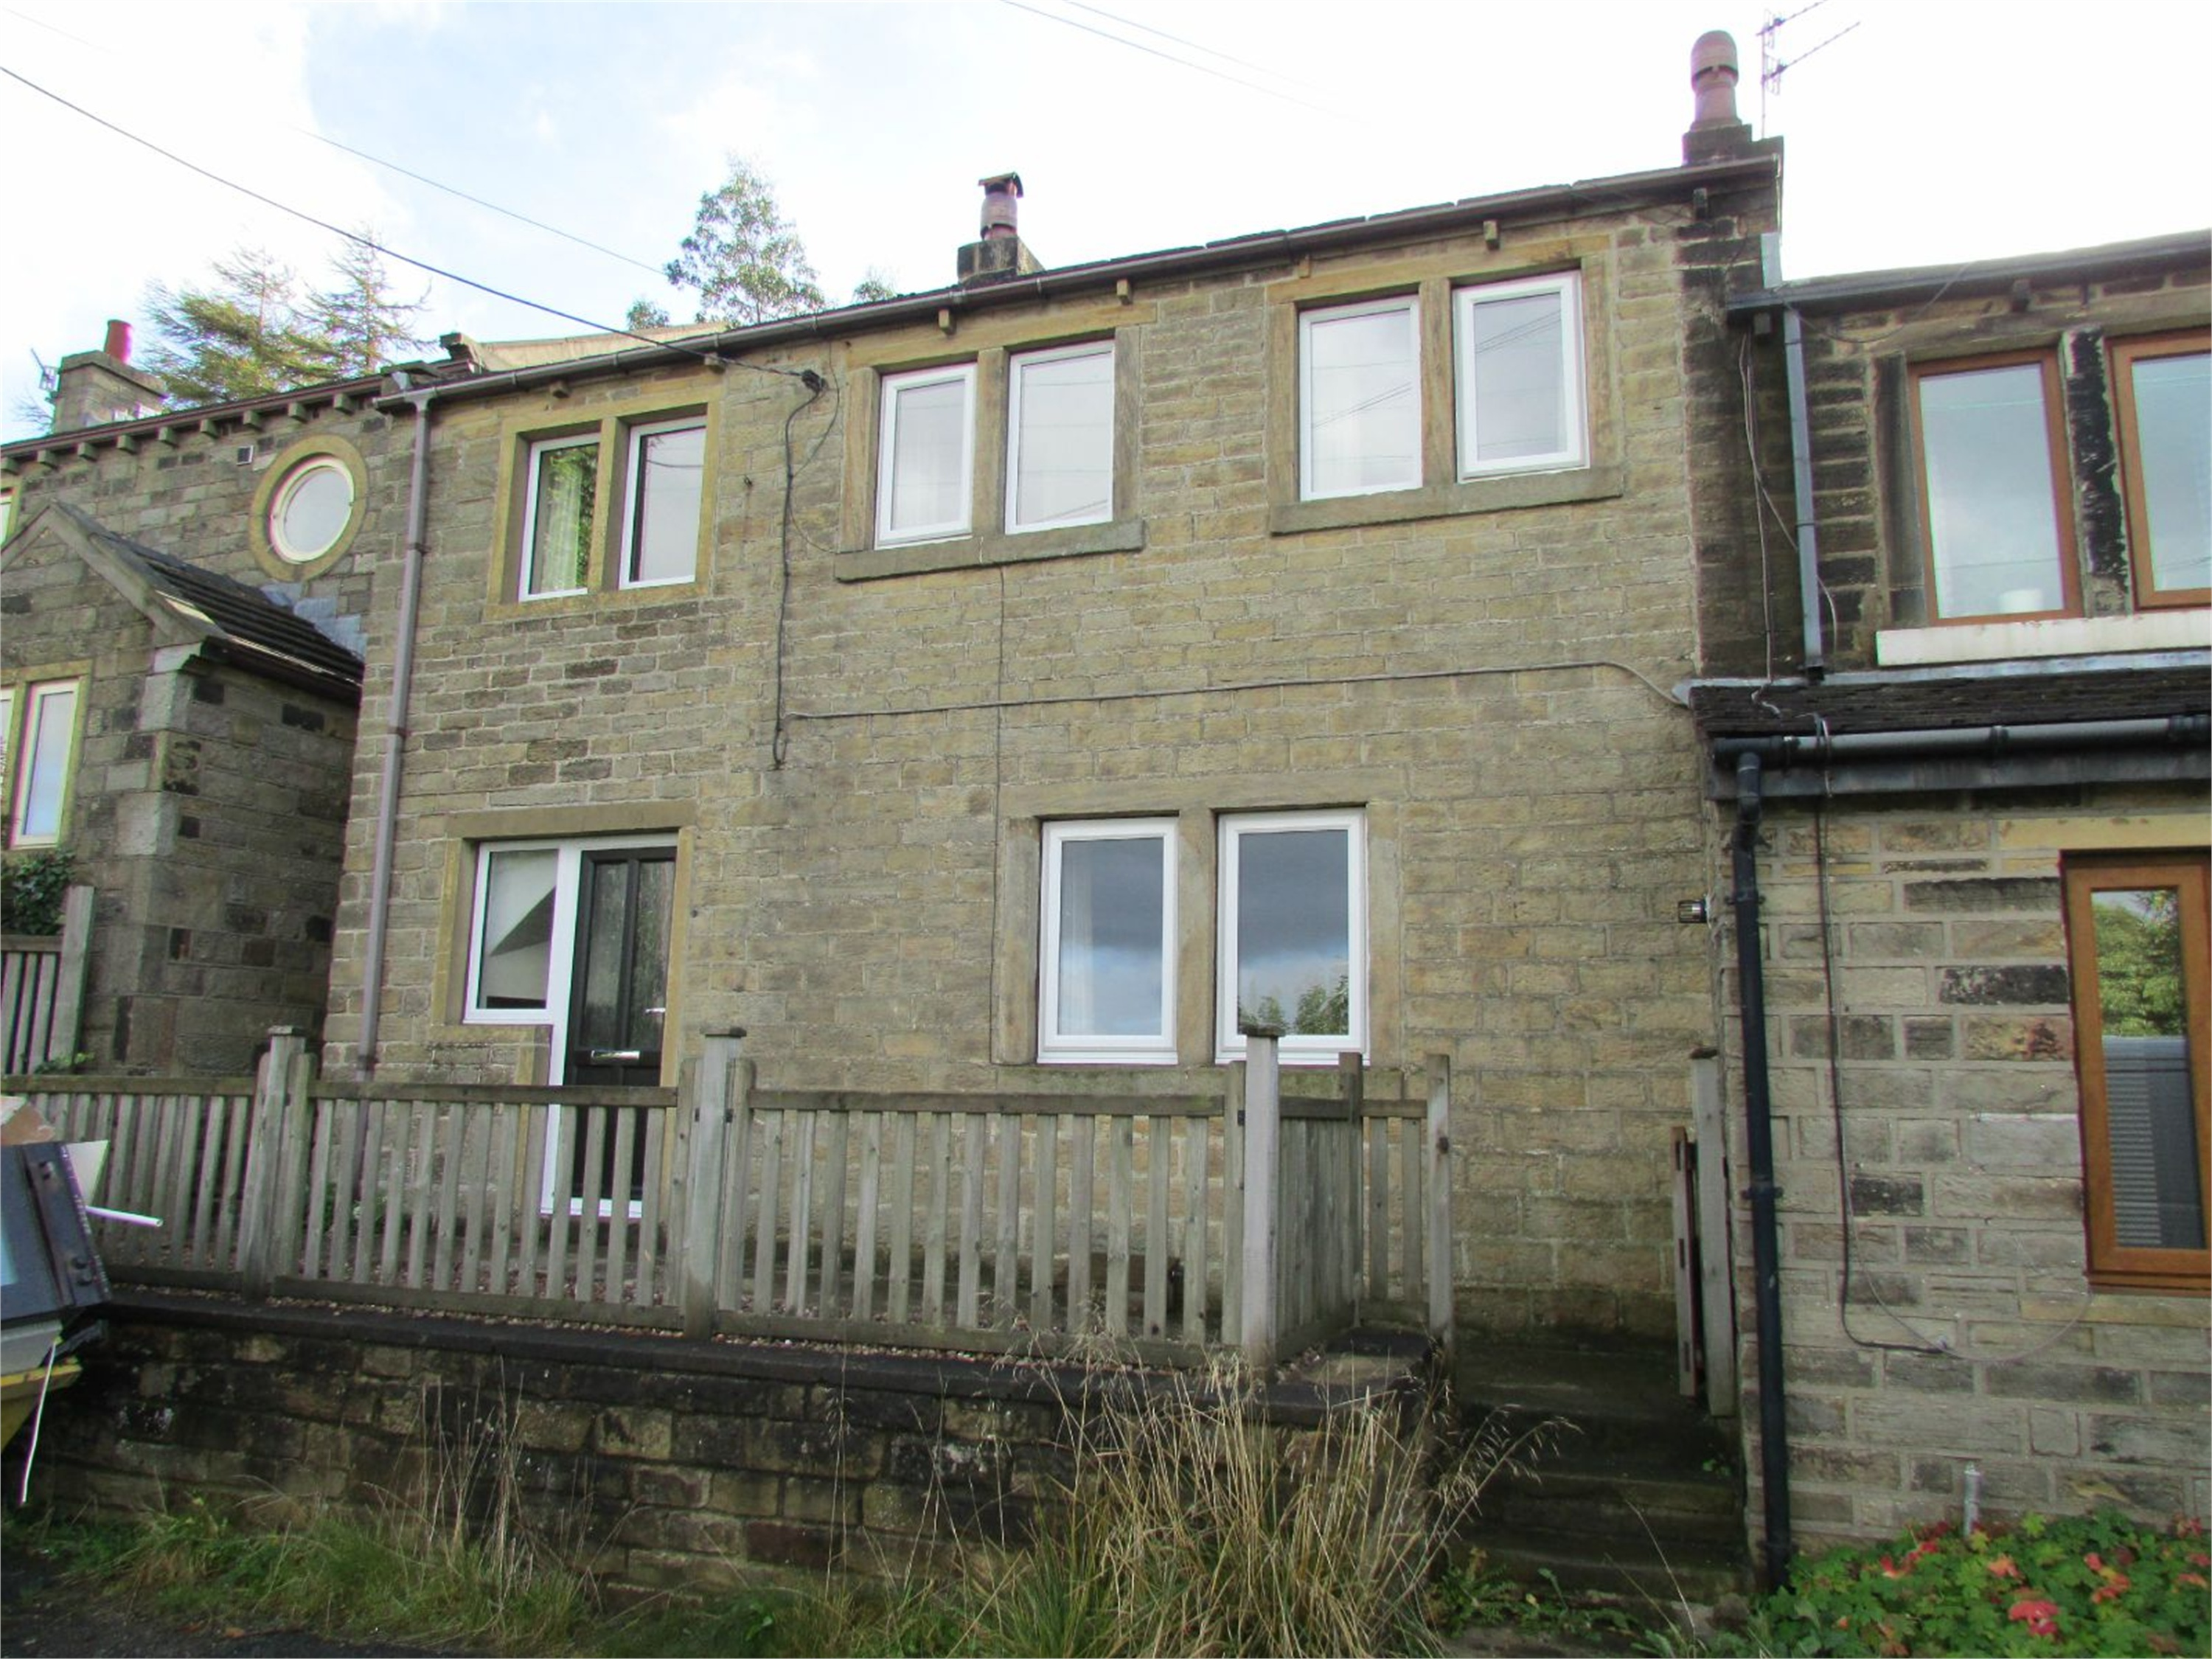 90 Cliff Road, Holmfirth, HD9 1UZ